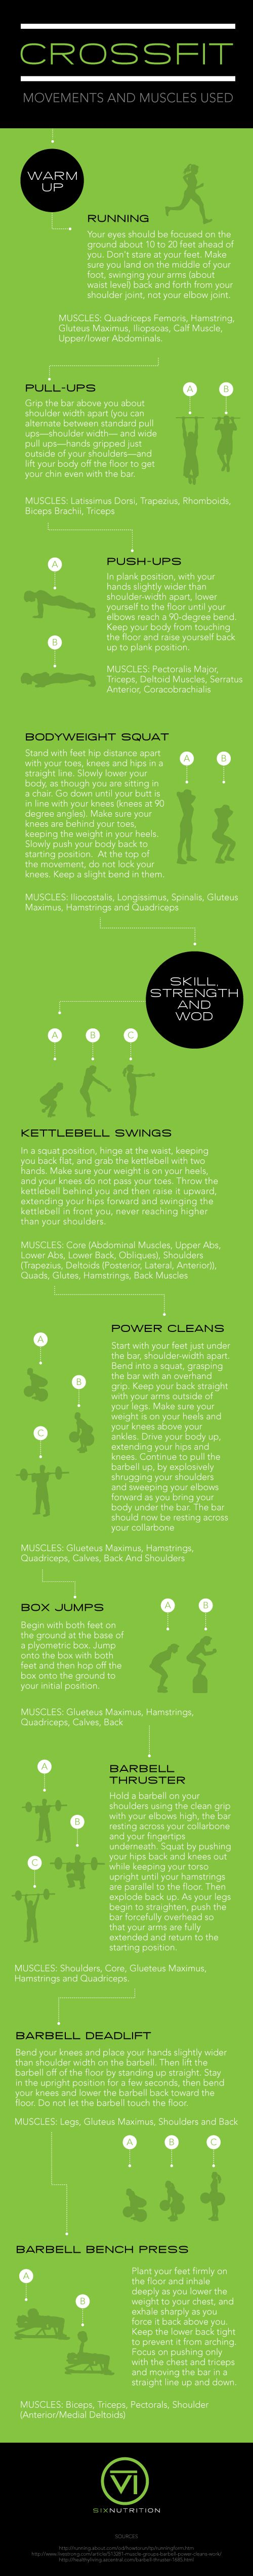 Crossfit | Muscles and Movements Involved